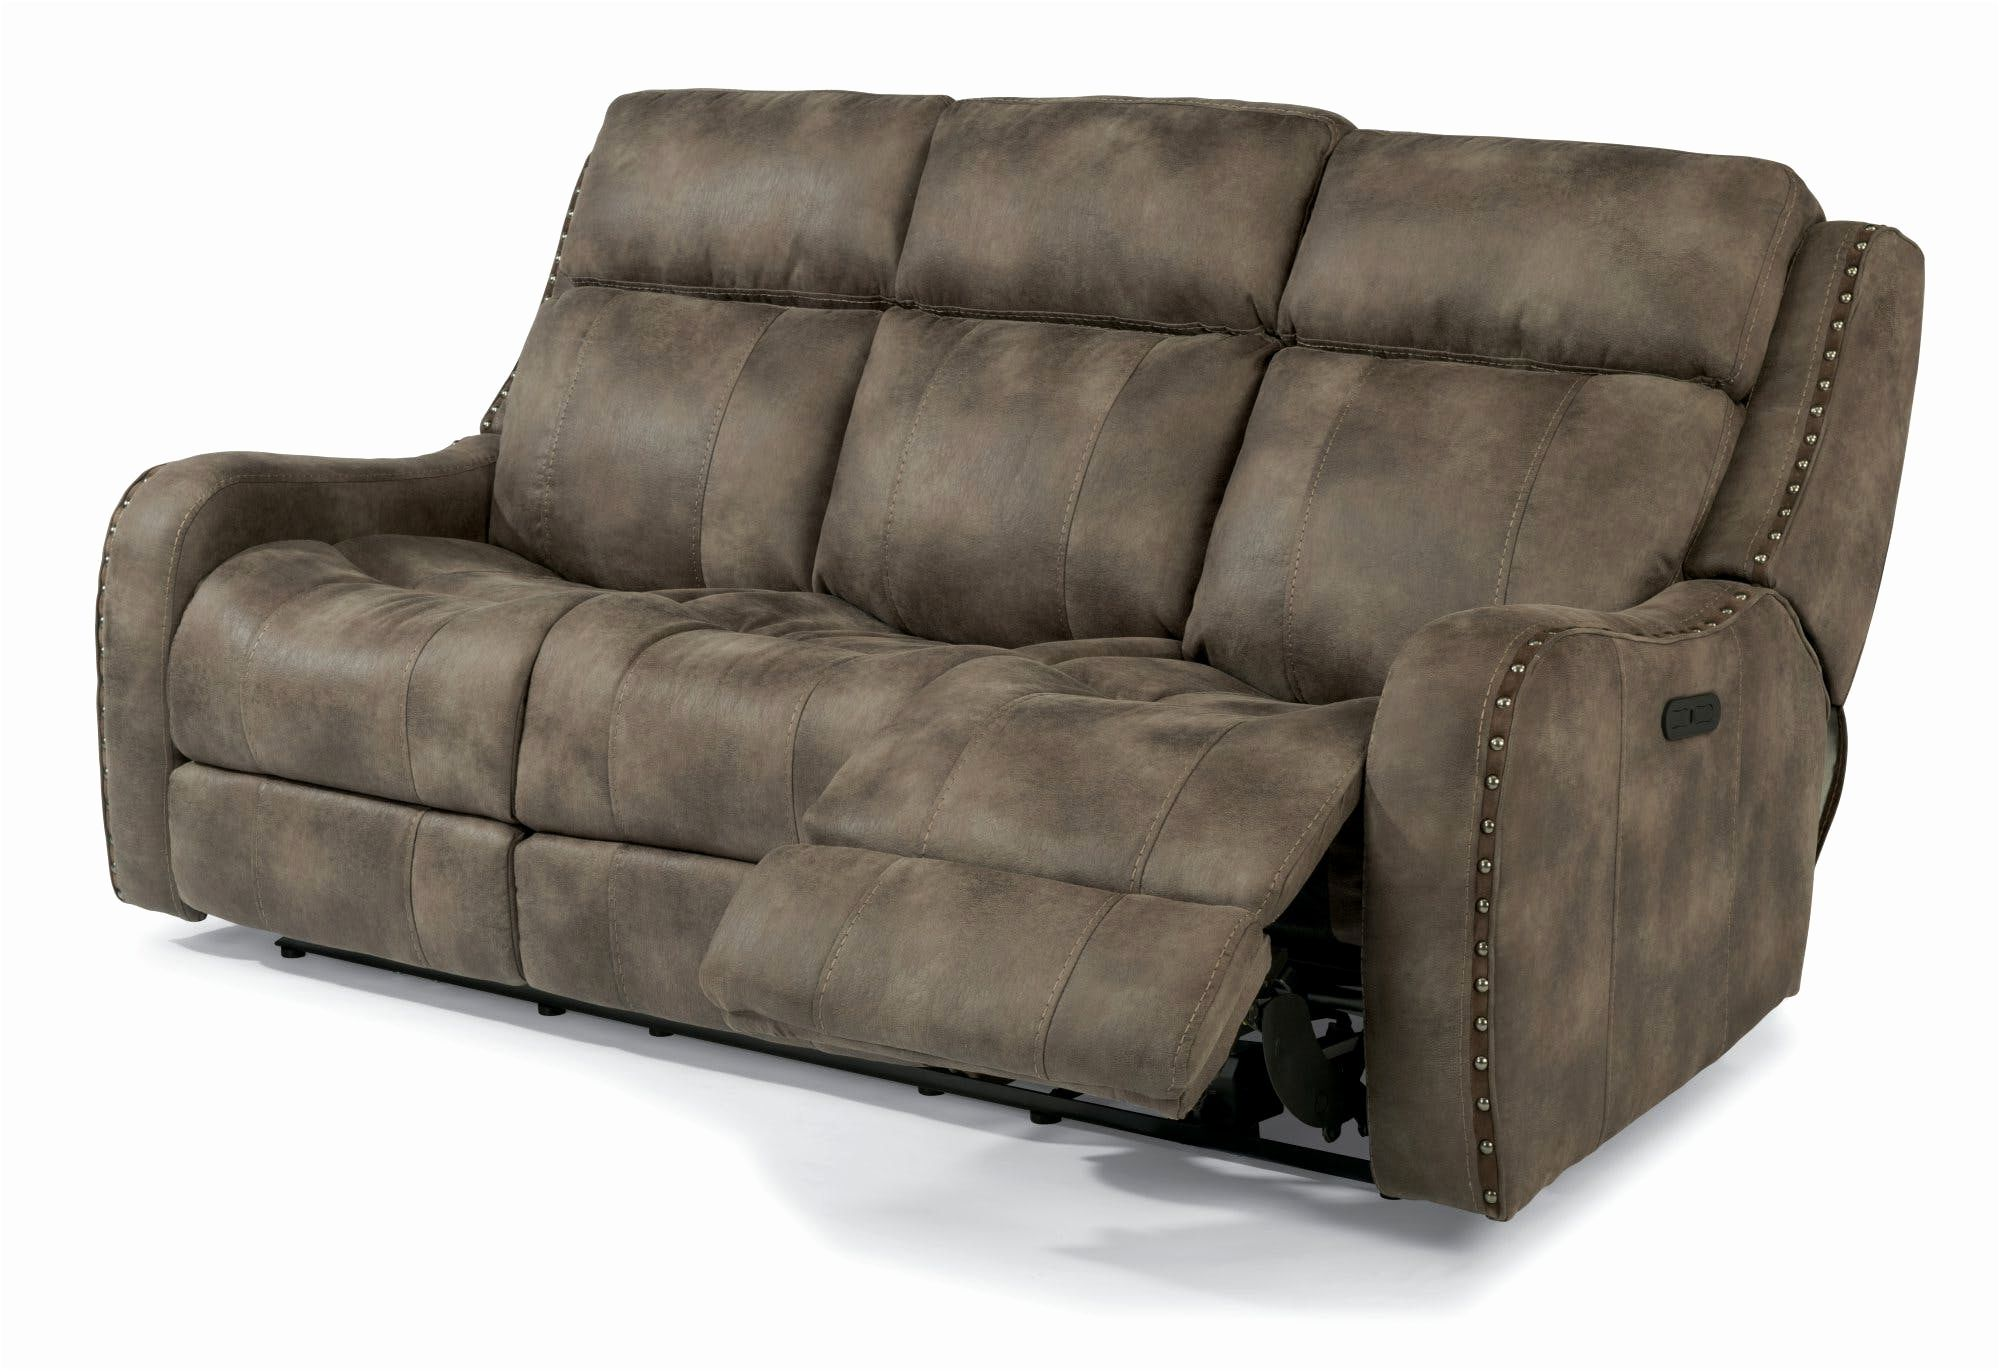 inspirational sectional recliner sofas concept-Lovely Sectional Recliner sofas Architecture